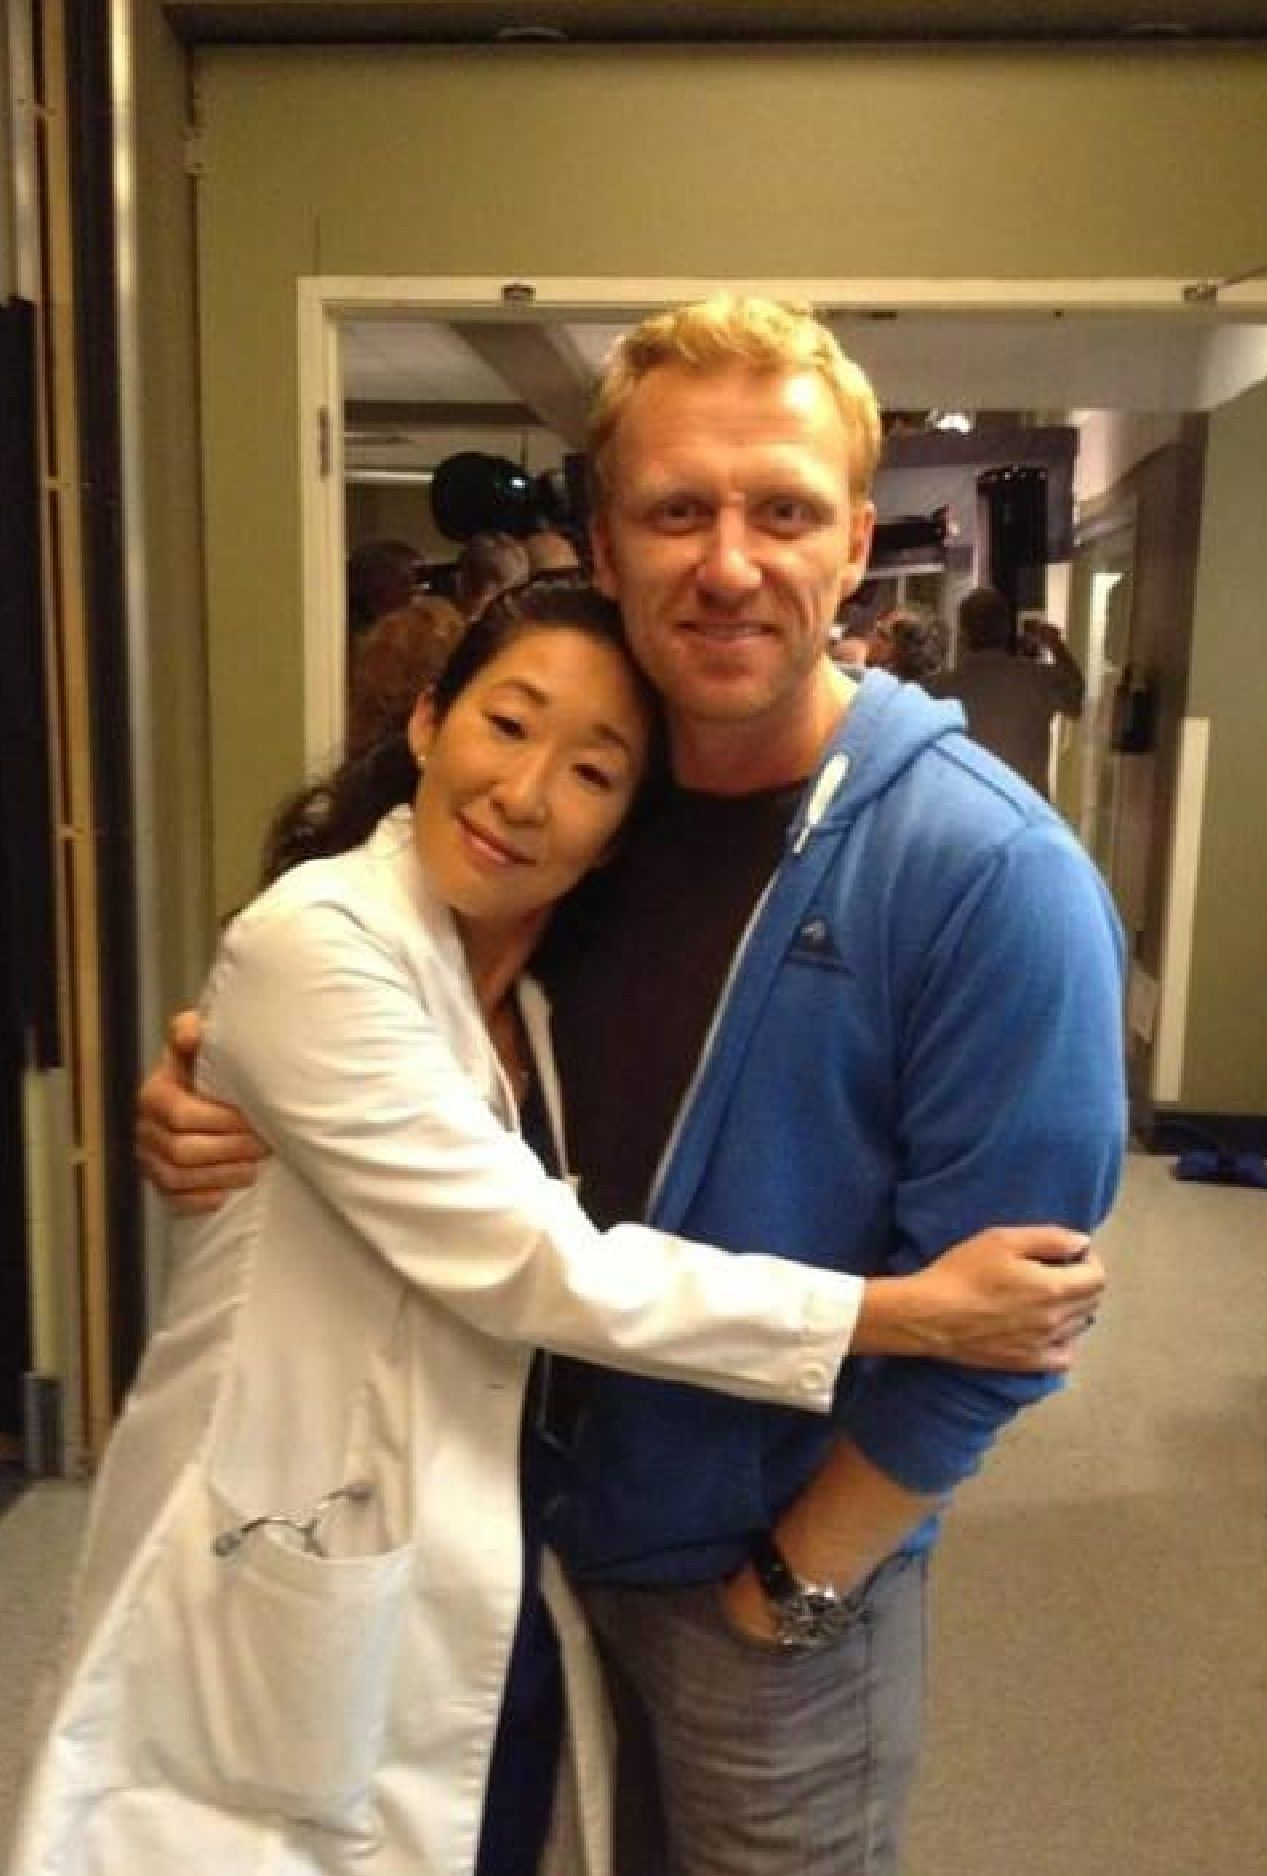 Kevin n Sandra | Kevin McKidd on Set Season 10 | Pinterest